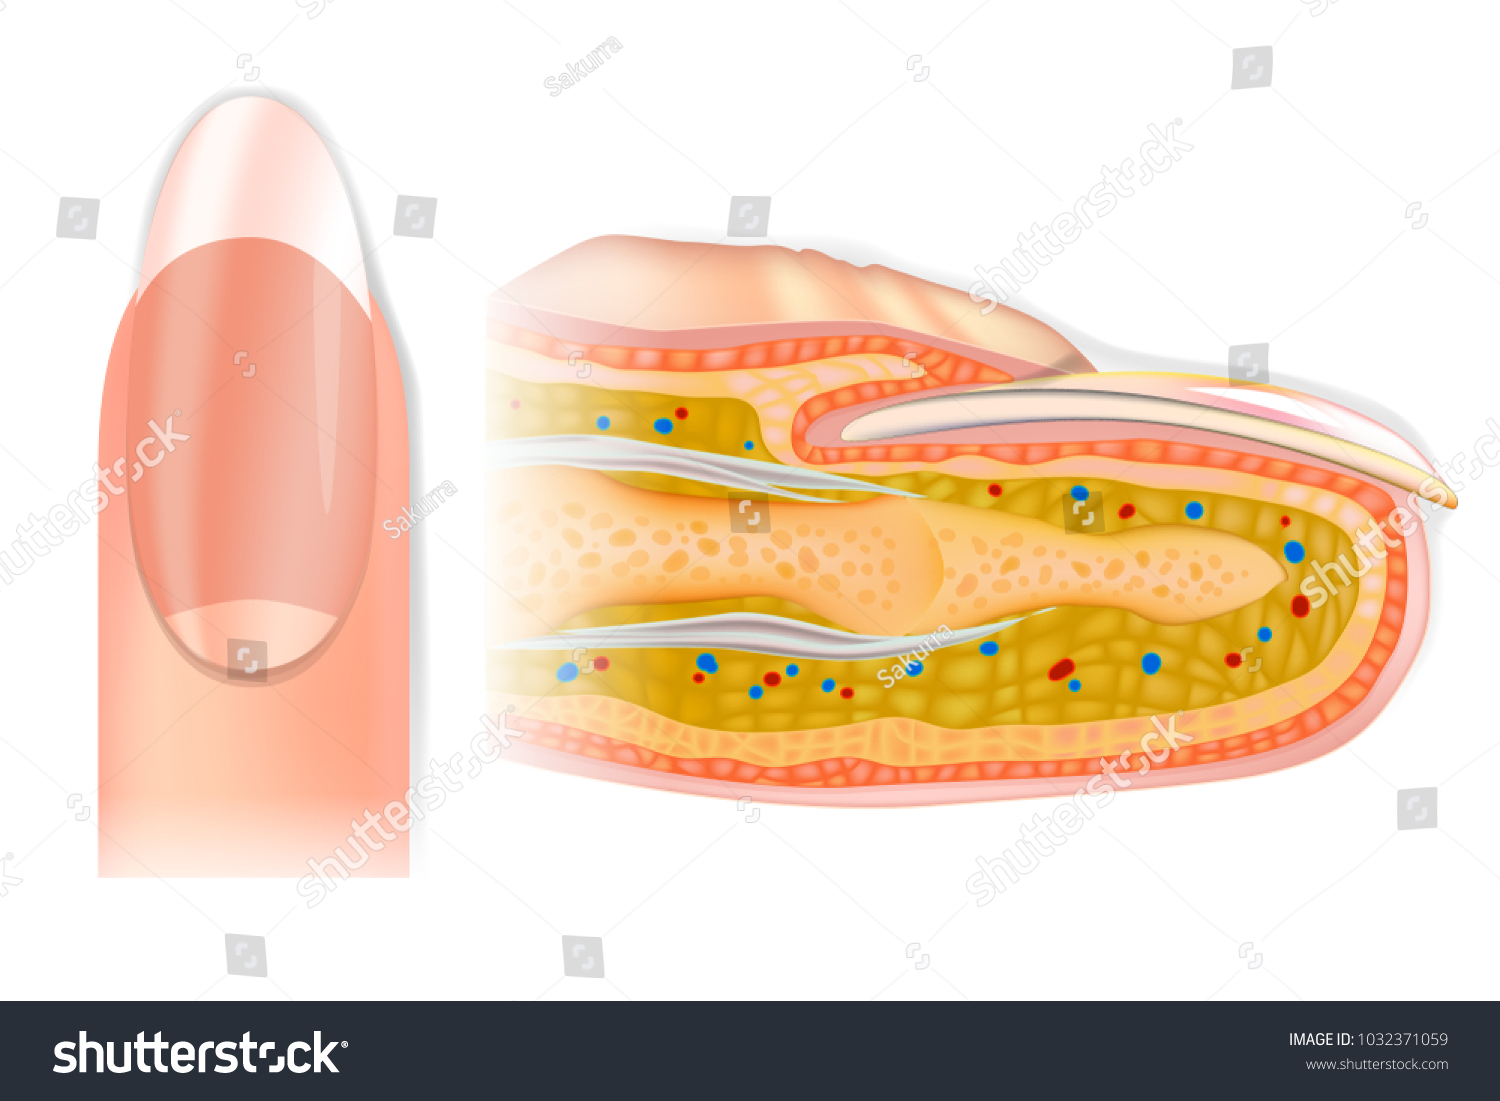 Human Crosssection Finger Structure Anatomy Finger Stock Vector ...